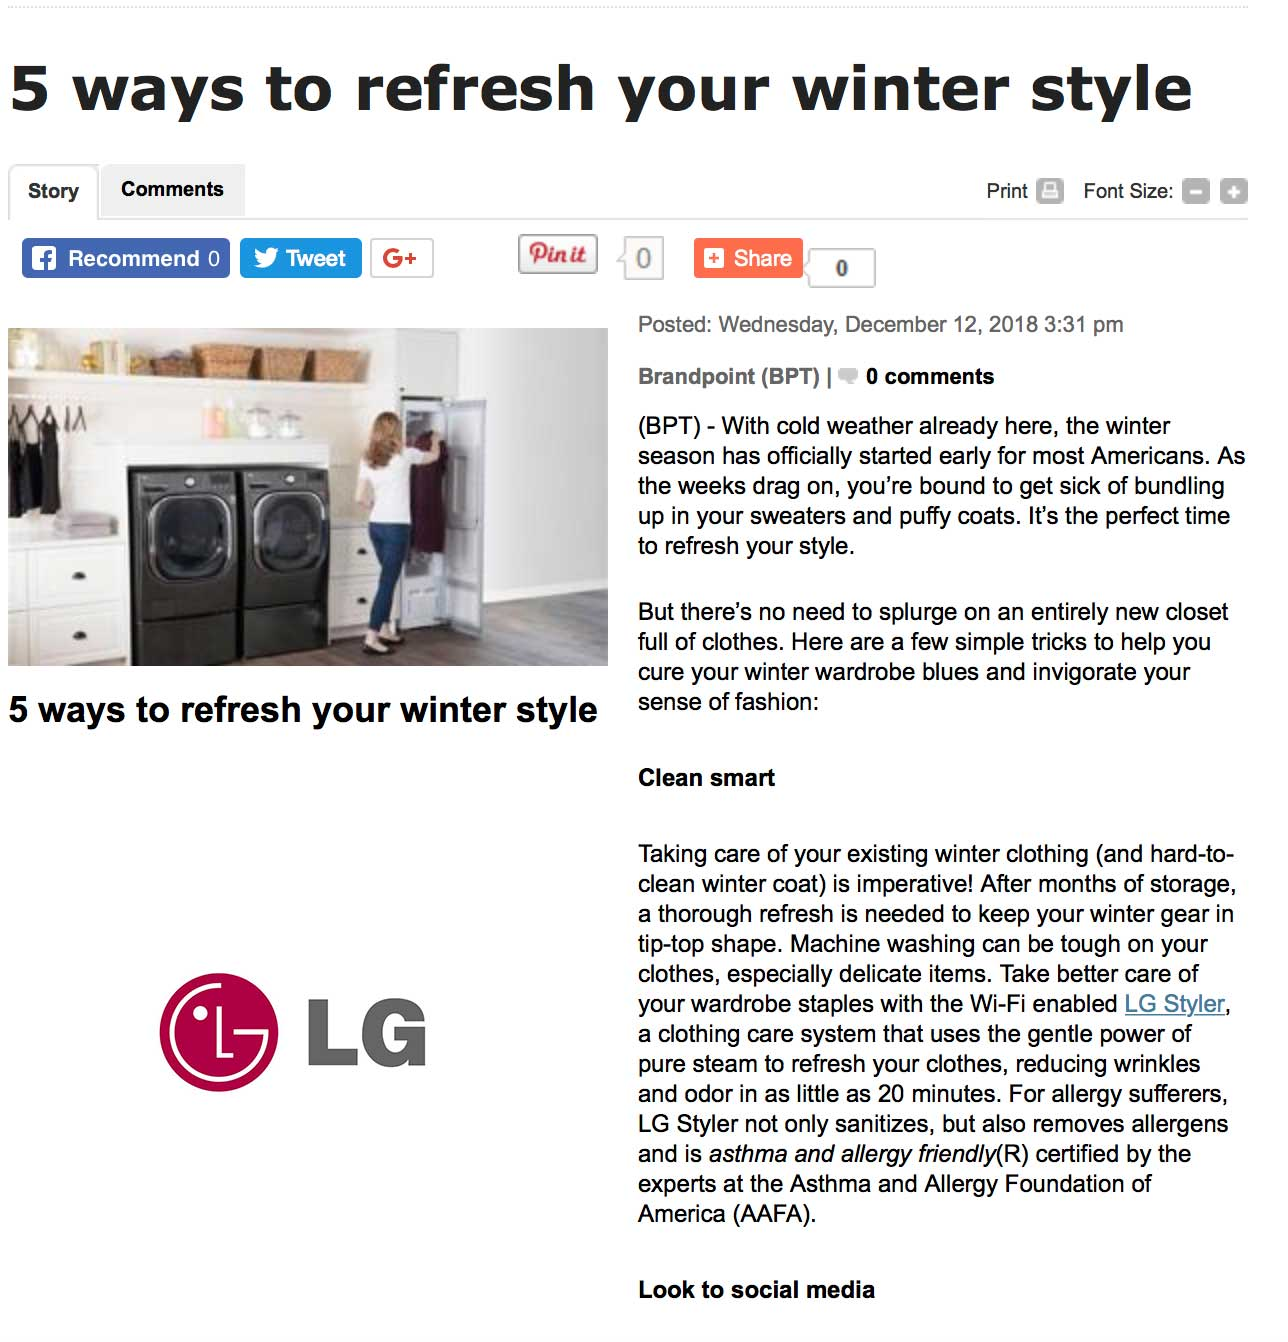 LG CERTIFIED Styler, Steam Clothing Care